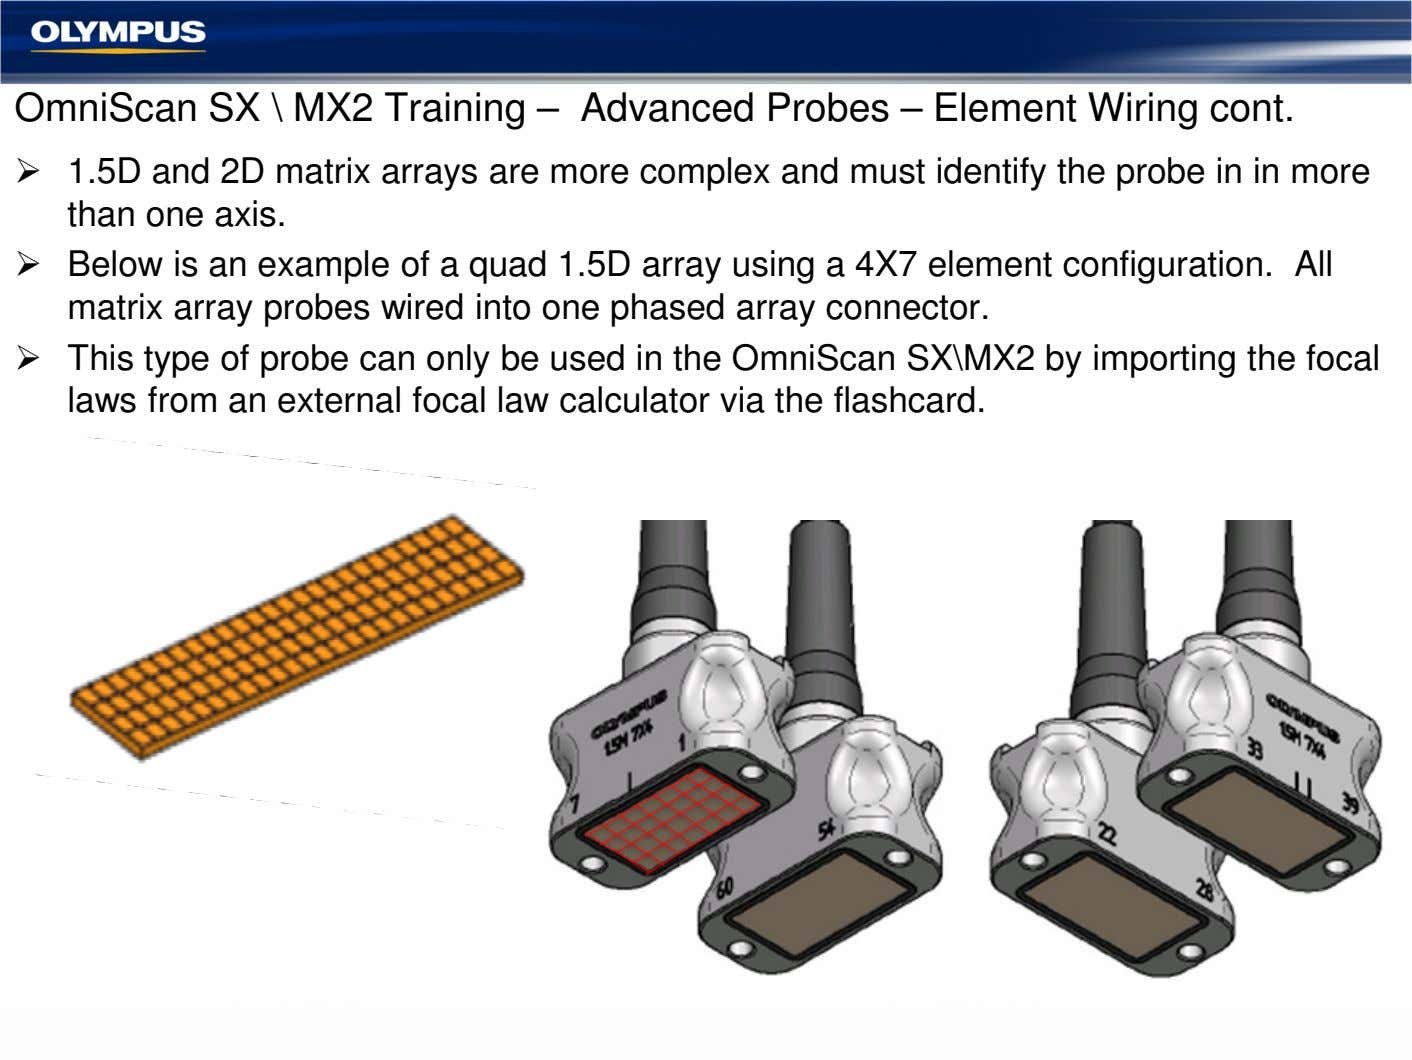 OmniScan SX \ MX2 Training – Advanced Probes – Element Wiring cont. 1.5D and 2D